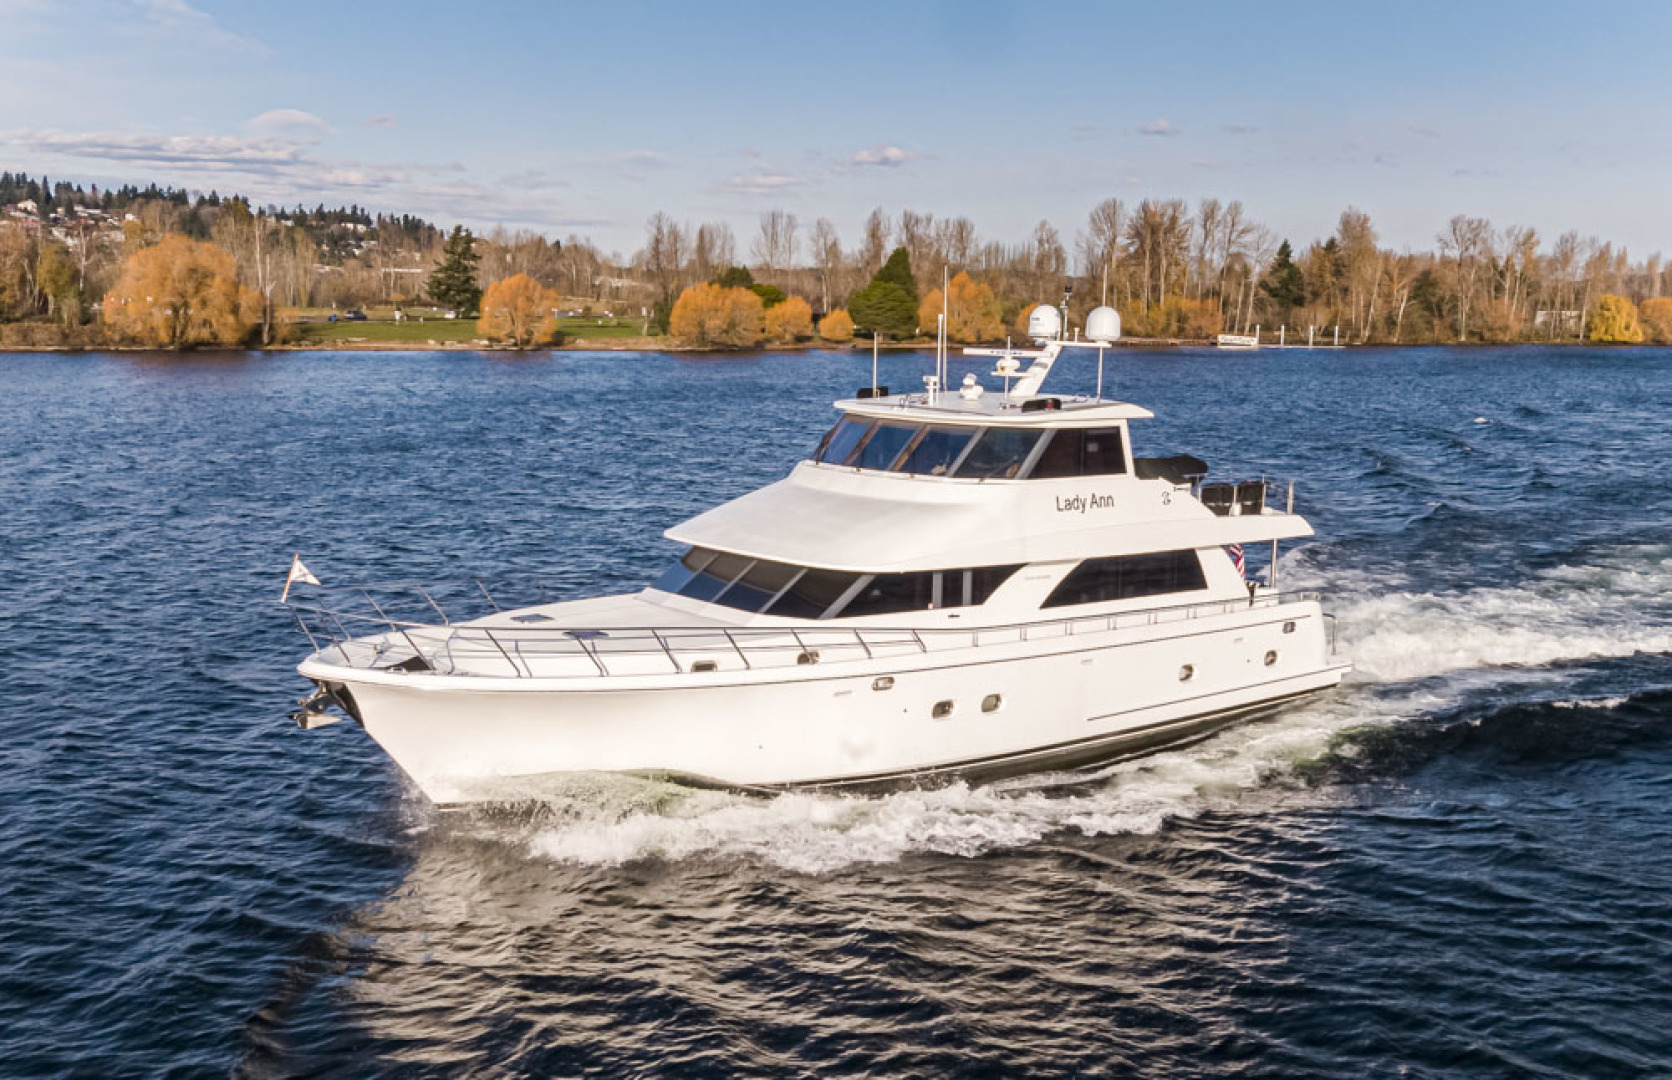 Ocean Alexander-OA 74 2007-LADY ANN Seattle-Washington-United States-Lady Ann 74 Ocean Alexander-1280018 | Thumbnail